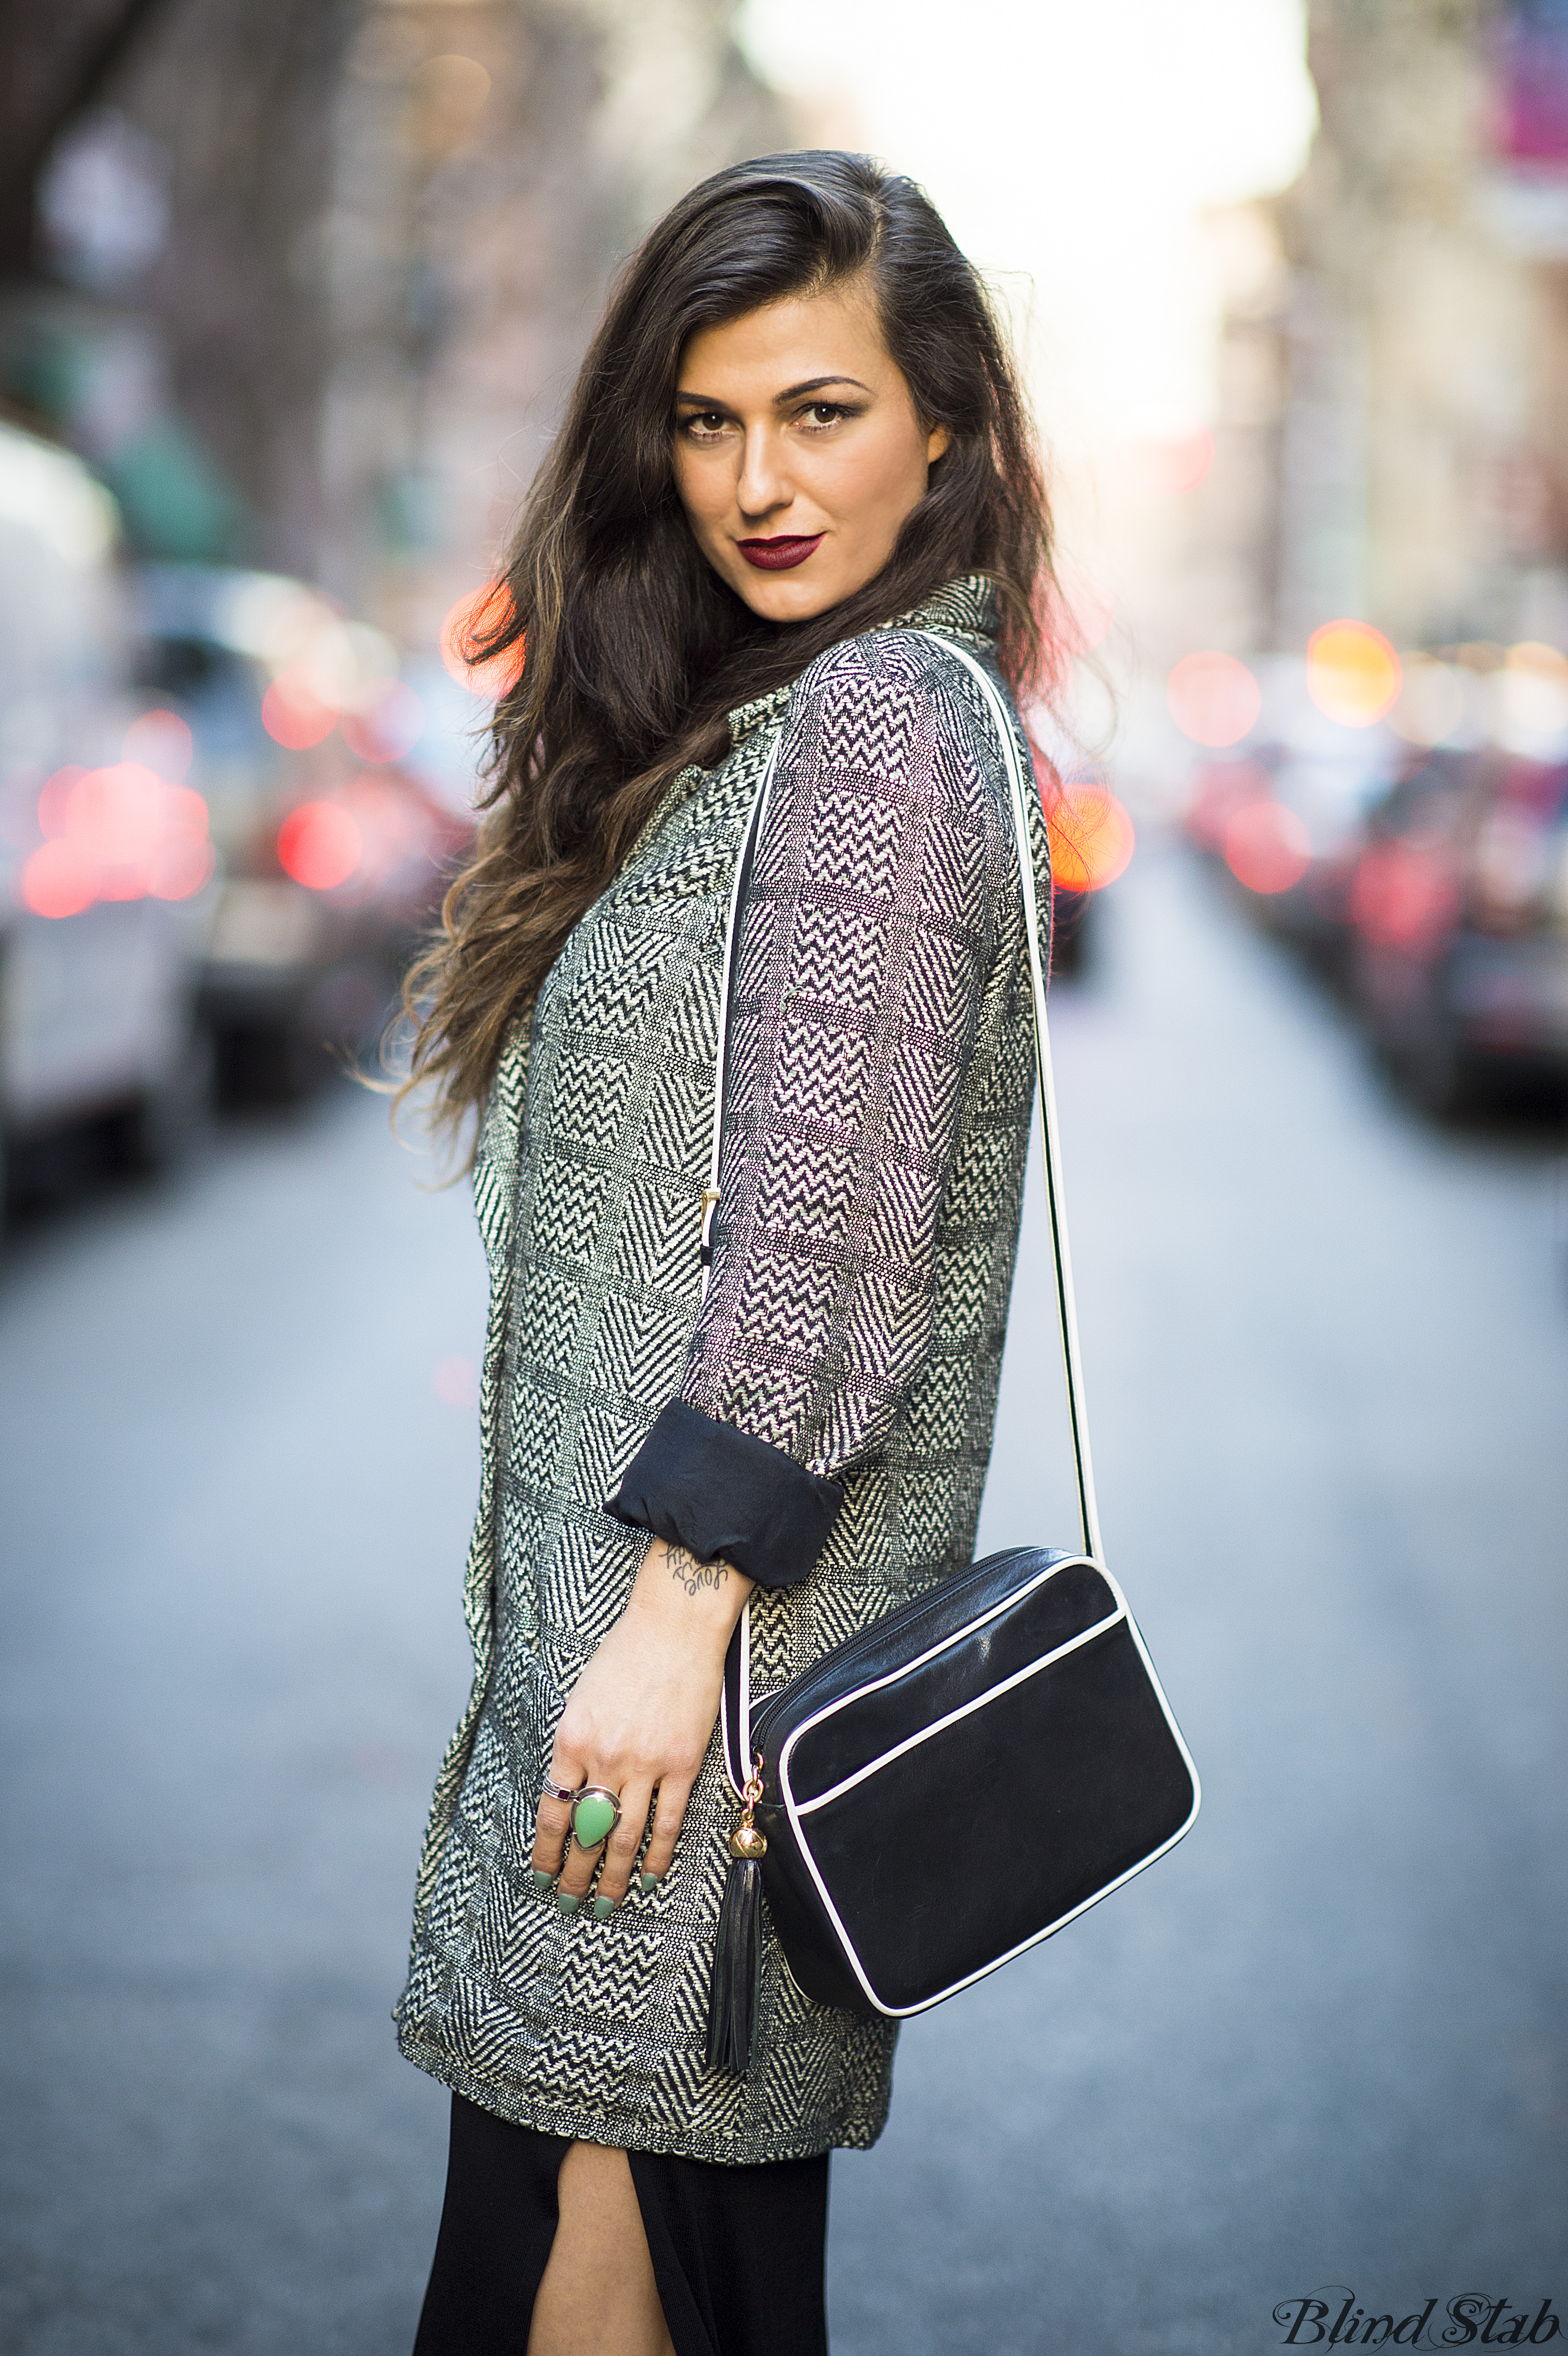 Long-Brown-Hair-Plaid-Coat-Turquoise-Nails